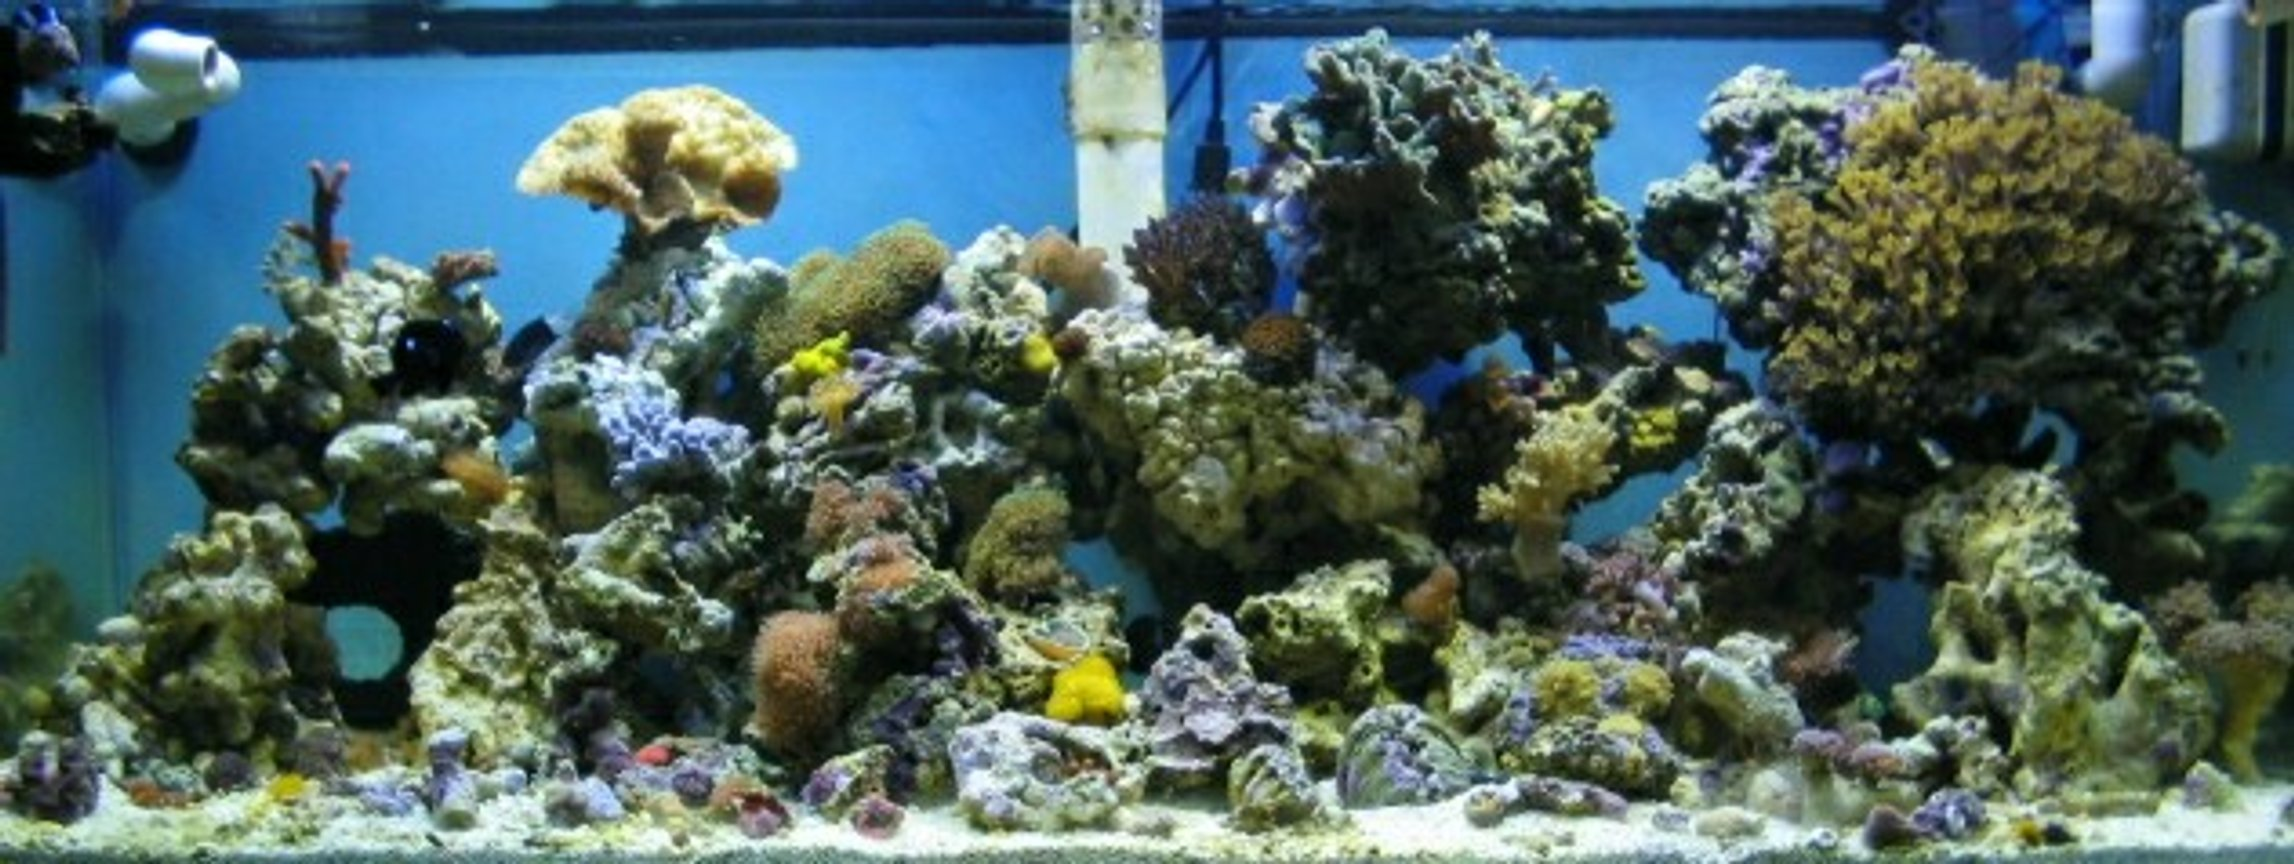 reef tank (mostly live coral and fish) - 36 gallon corner bowfront:canister filter;powersweep powerhead;87 watt power compacts;2-20 watt flourescents;and no skimmer........about 75 lbs. of live rock...corals include 7 different colors of mushrooms including two different colors of elephant ears,5 colors of ricordia,27 different colored colonies of zoo's,1 sarcophyton,2 hammerheads,1 fogspawn,1 blostemus merlotti,yellow polyps,star polyps, 10 inch slipper, derasa clam,assorted snails and crabs,black clown,2 damsels, it's about 5 months old